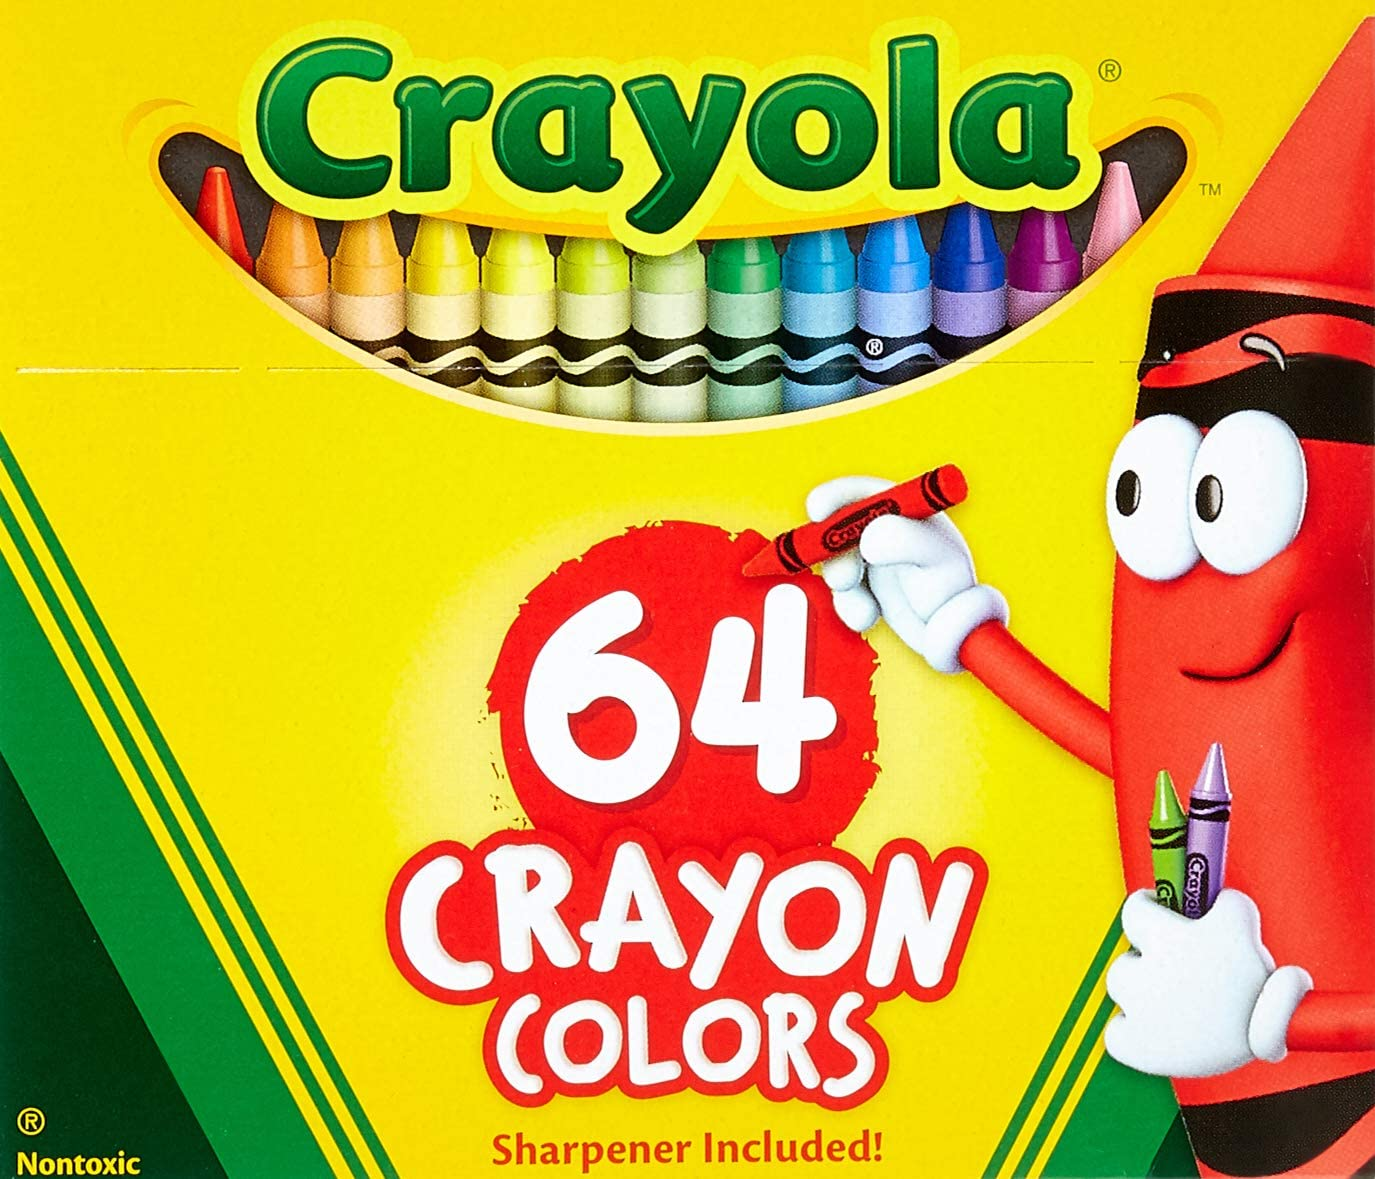 Sealed Crayola Crayons Box with Built-In Sharpener 64 Count assorted colors